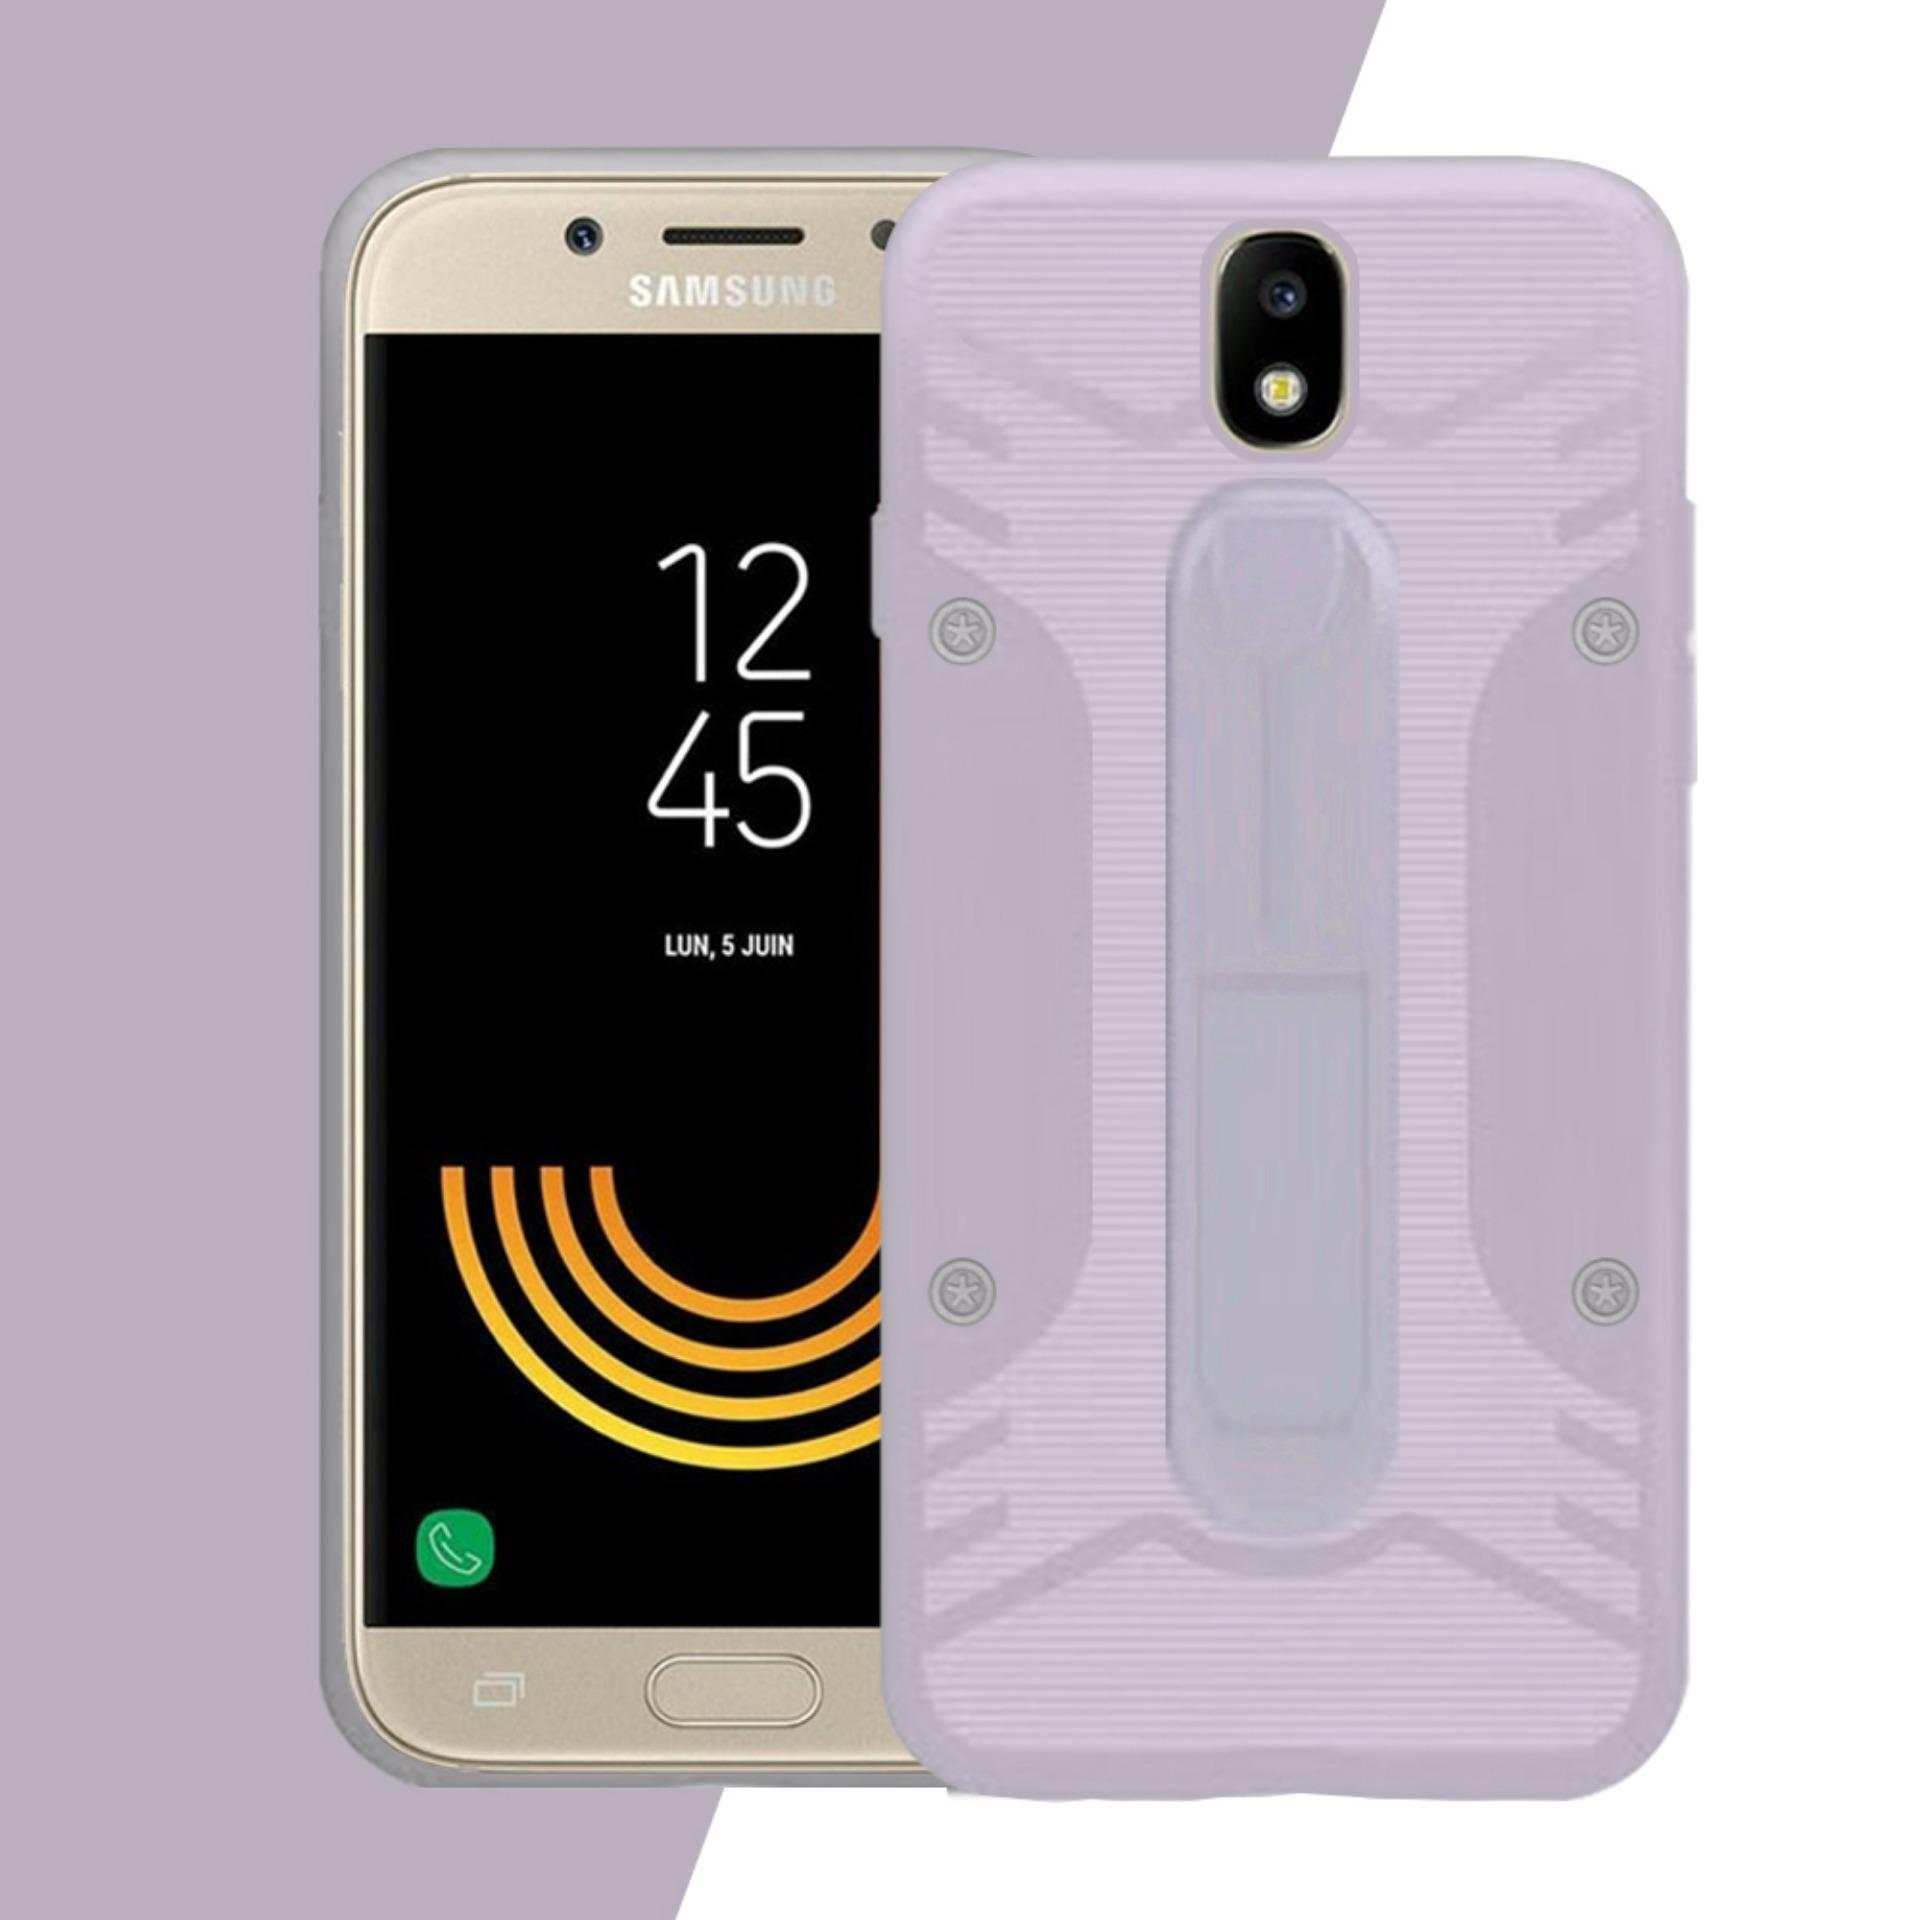 Case Samsung J5 Pro Conure 3in1 Smart Grip COCOSE IPAKY Drop resistance anti Shock Silicone Cover